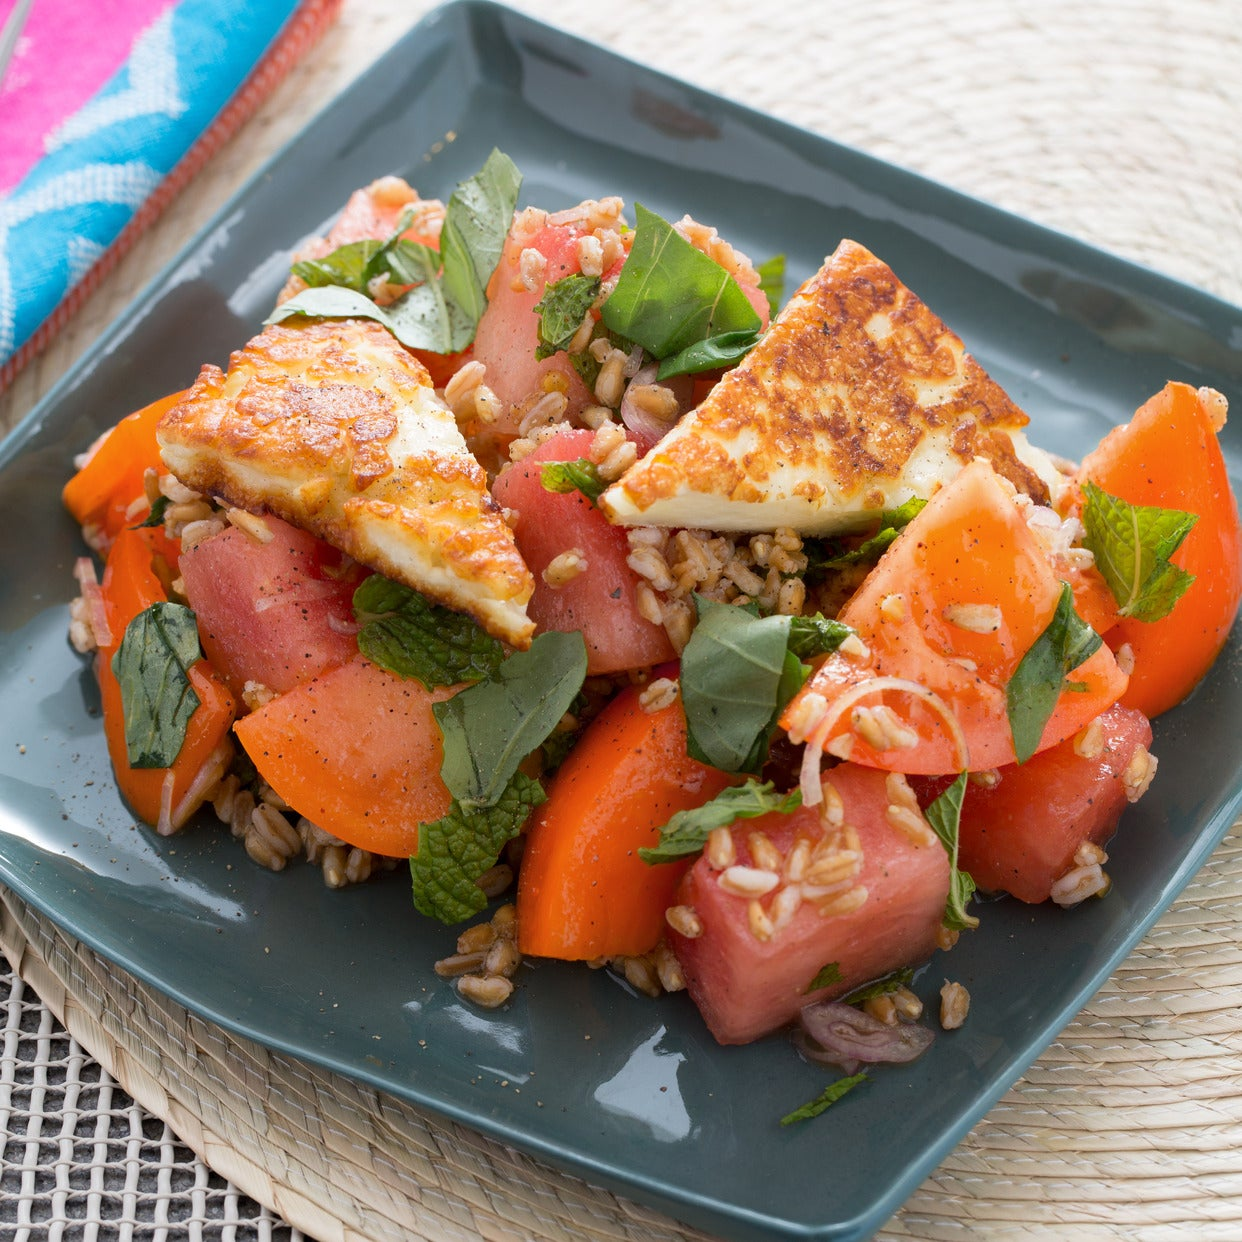 Tomato, Watermelon & Farro Salad with Seared Halloumi